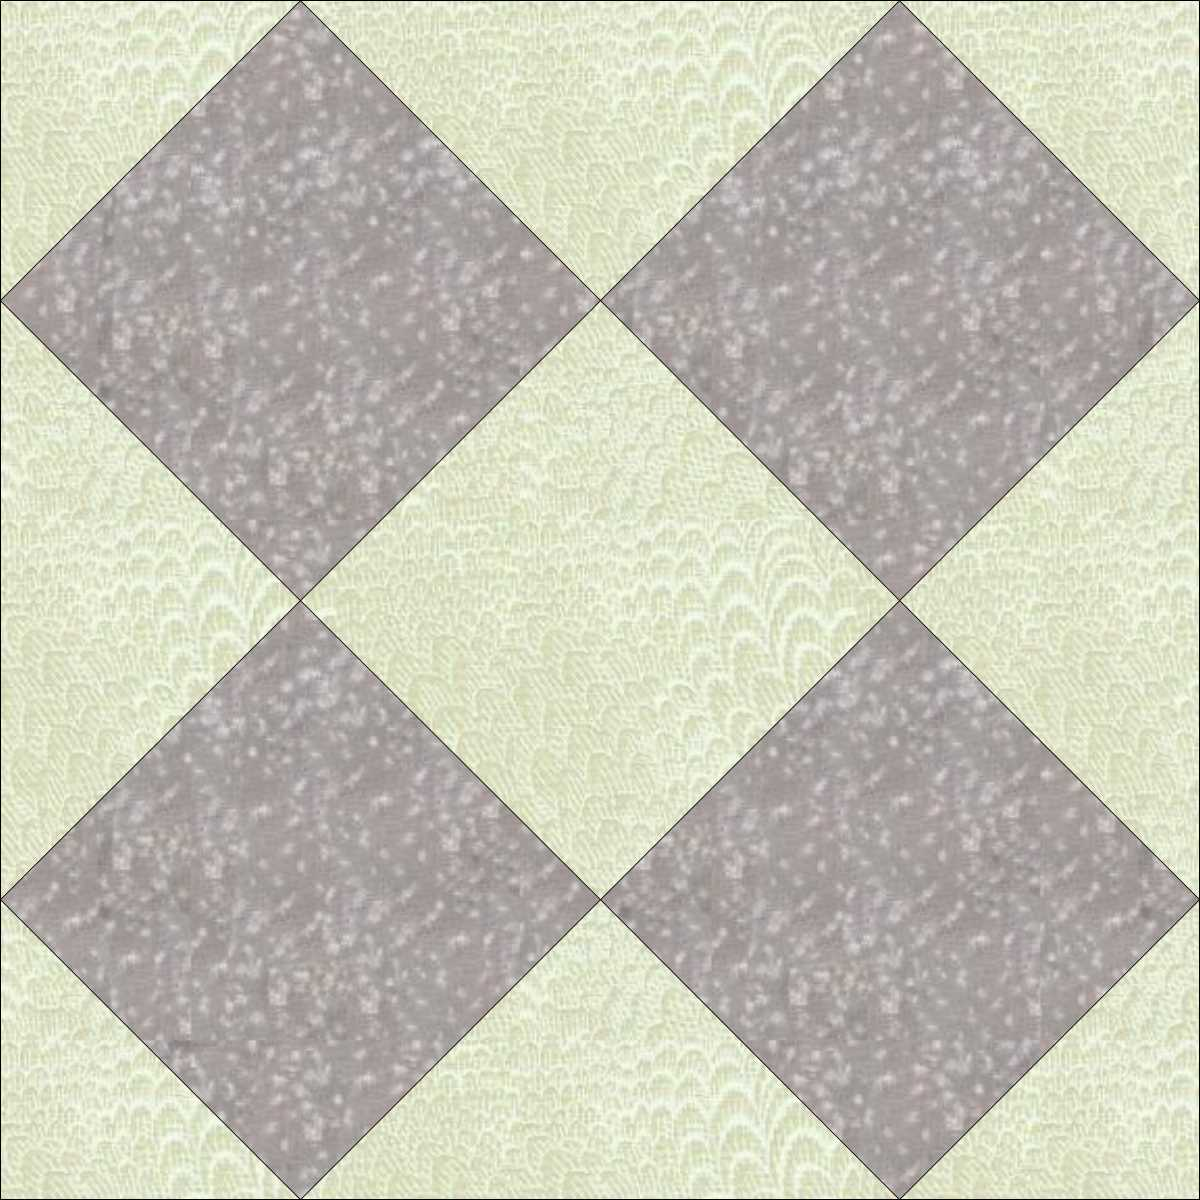 Super Simple Flying Geese Quilt Tutorial Suzy Quilts